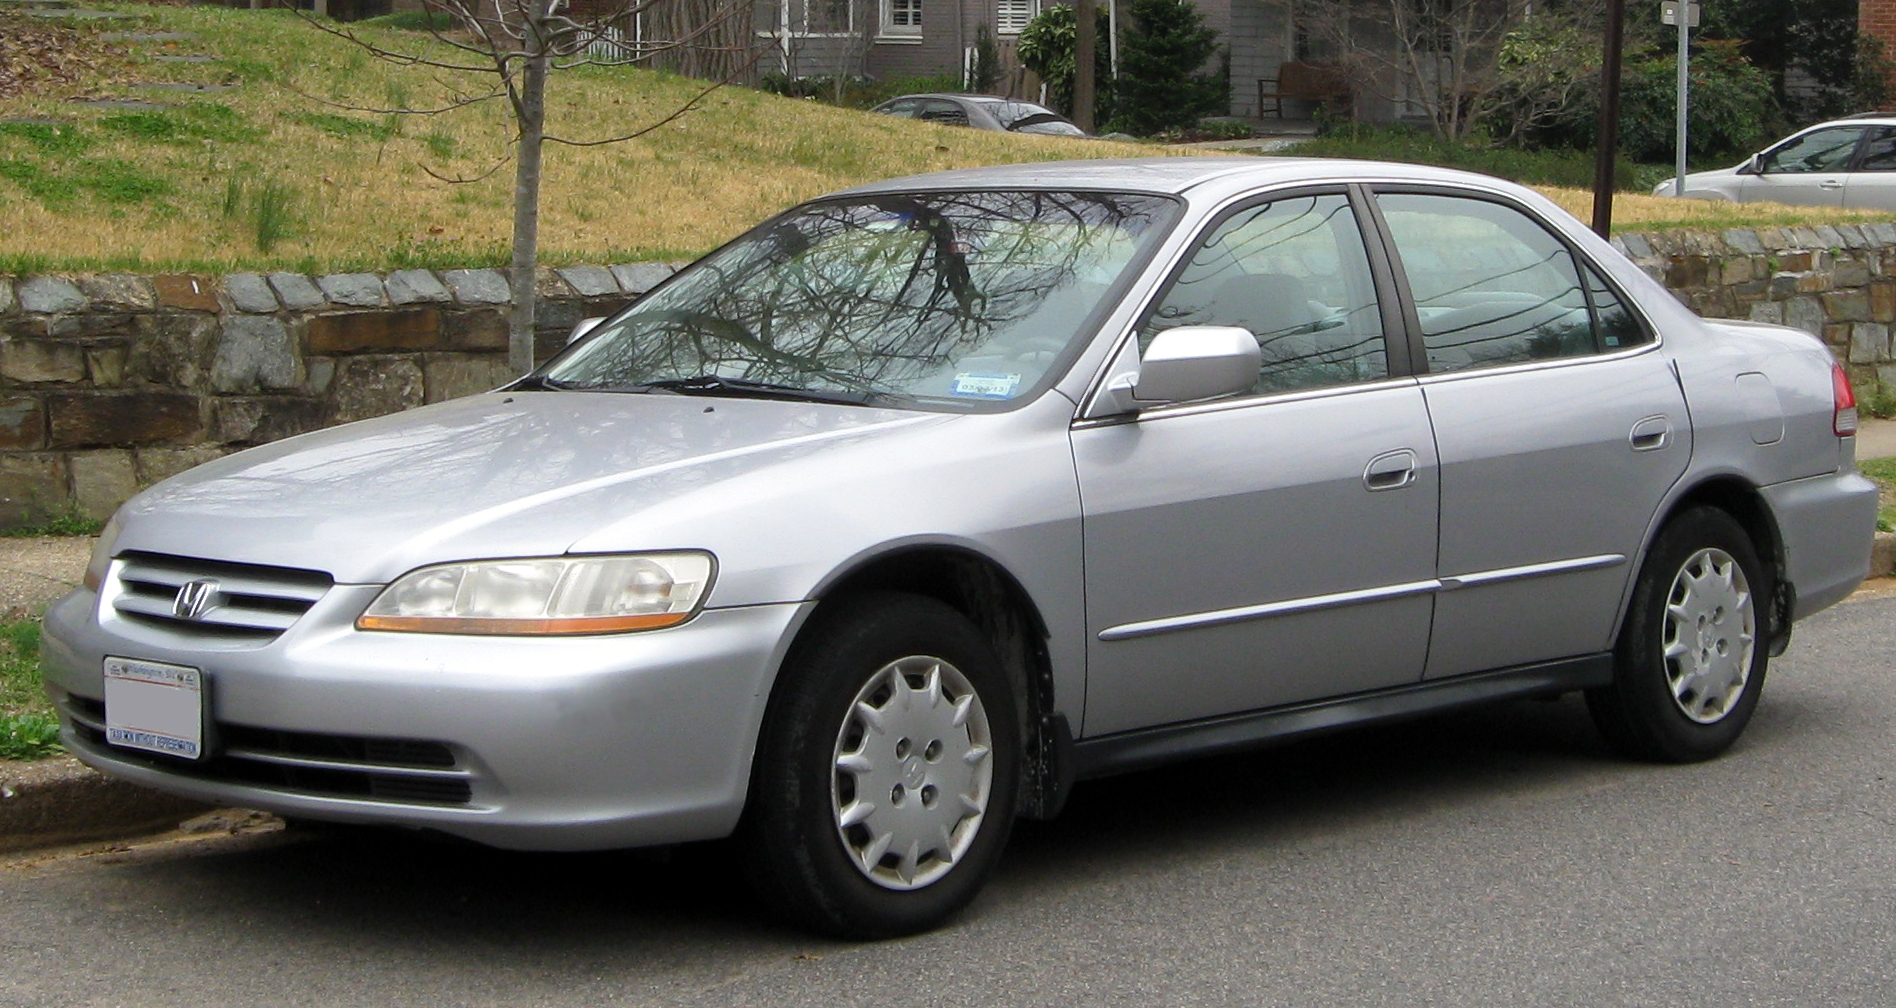 Cars honda accord #13